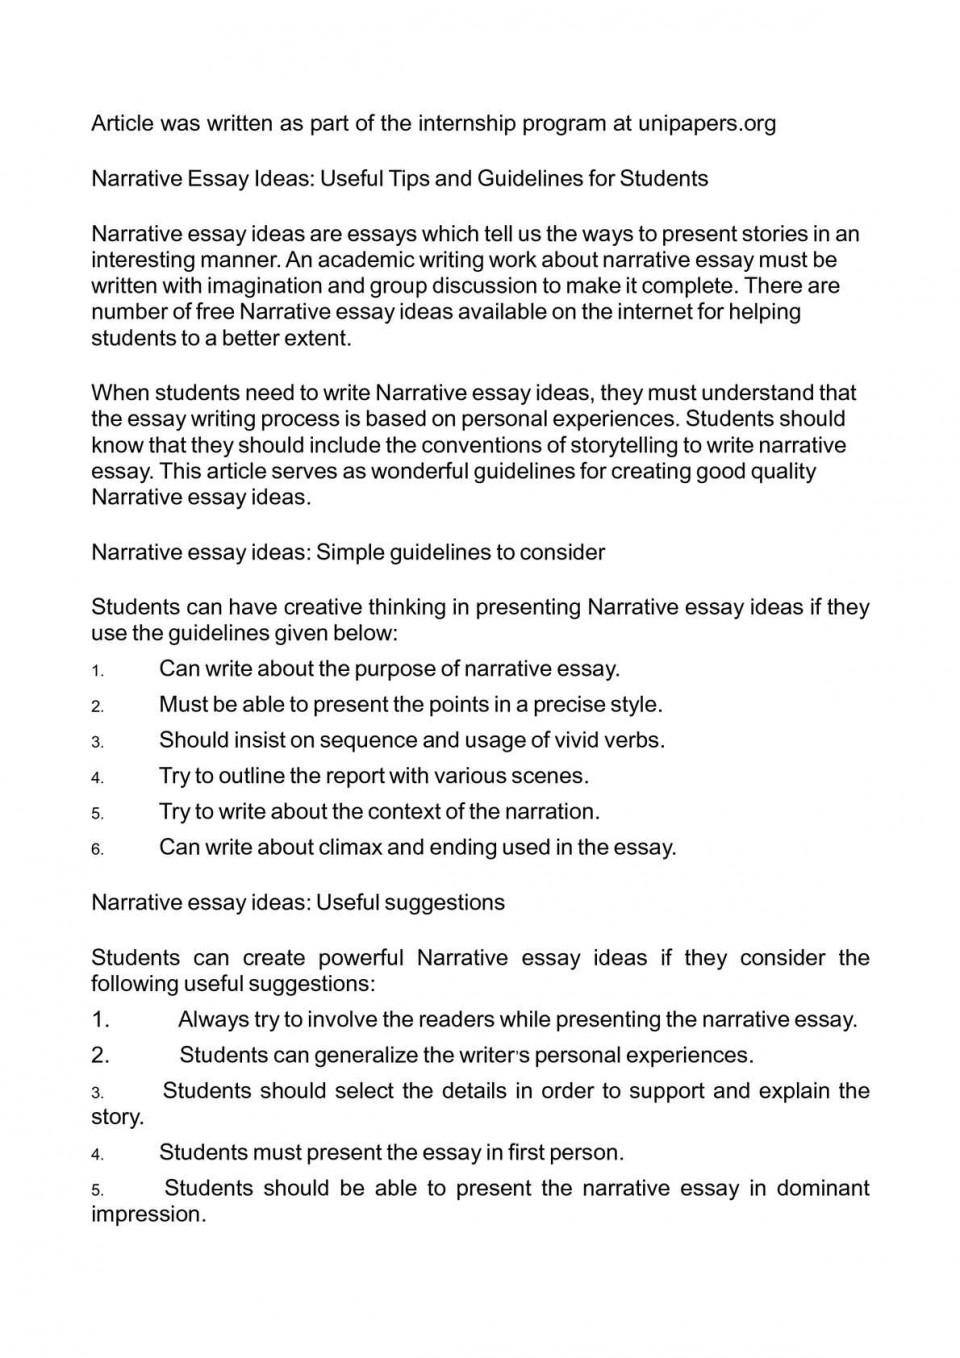 025 Writing Narrative Essay P1 Amazing A About Being Judged Quizlet Powerpoint 960